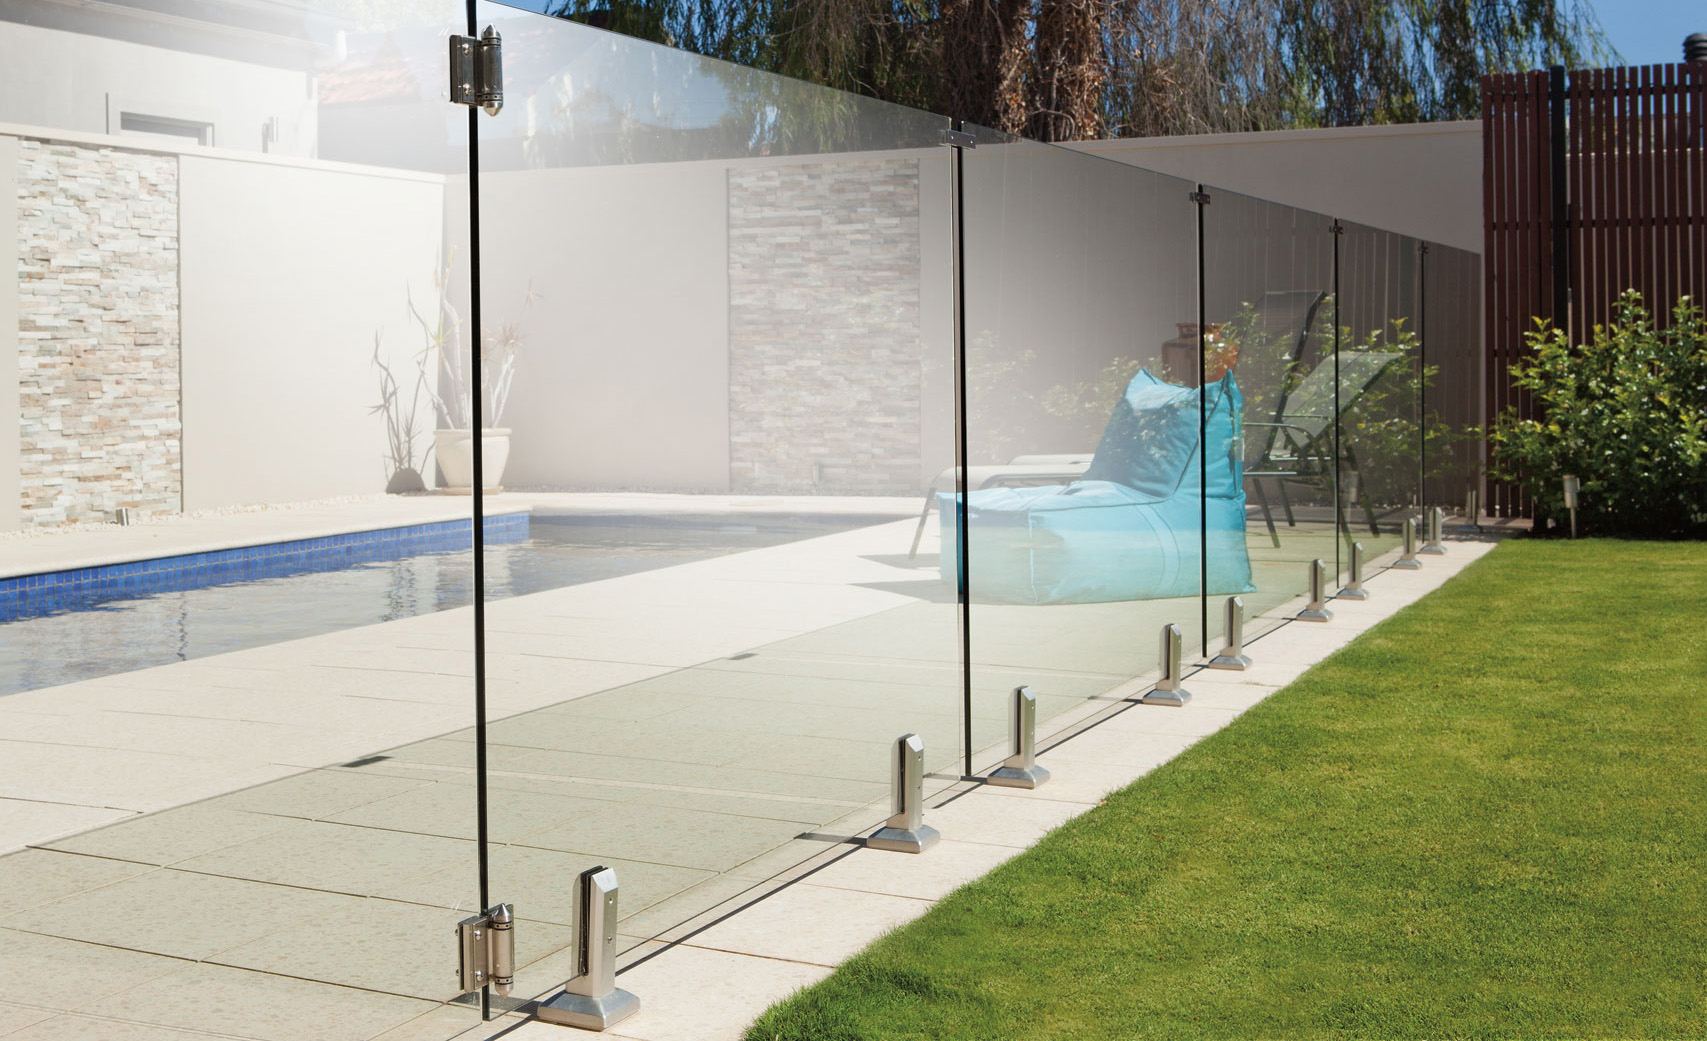 La cl ture en verre for Cloture aluminium pour piscine